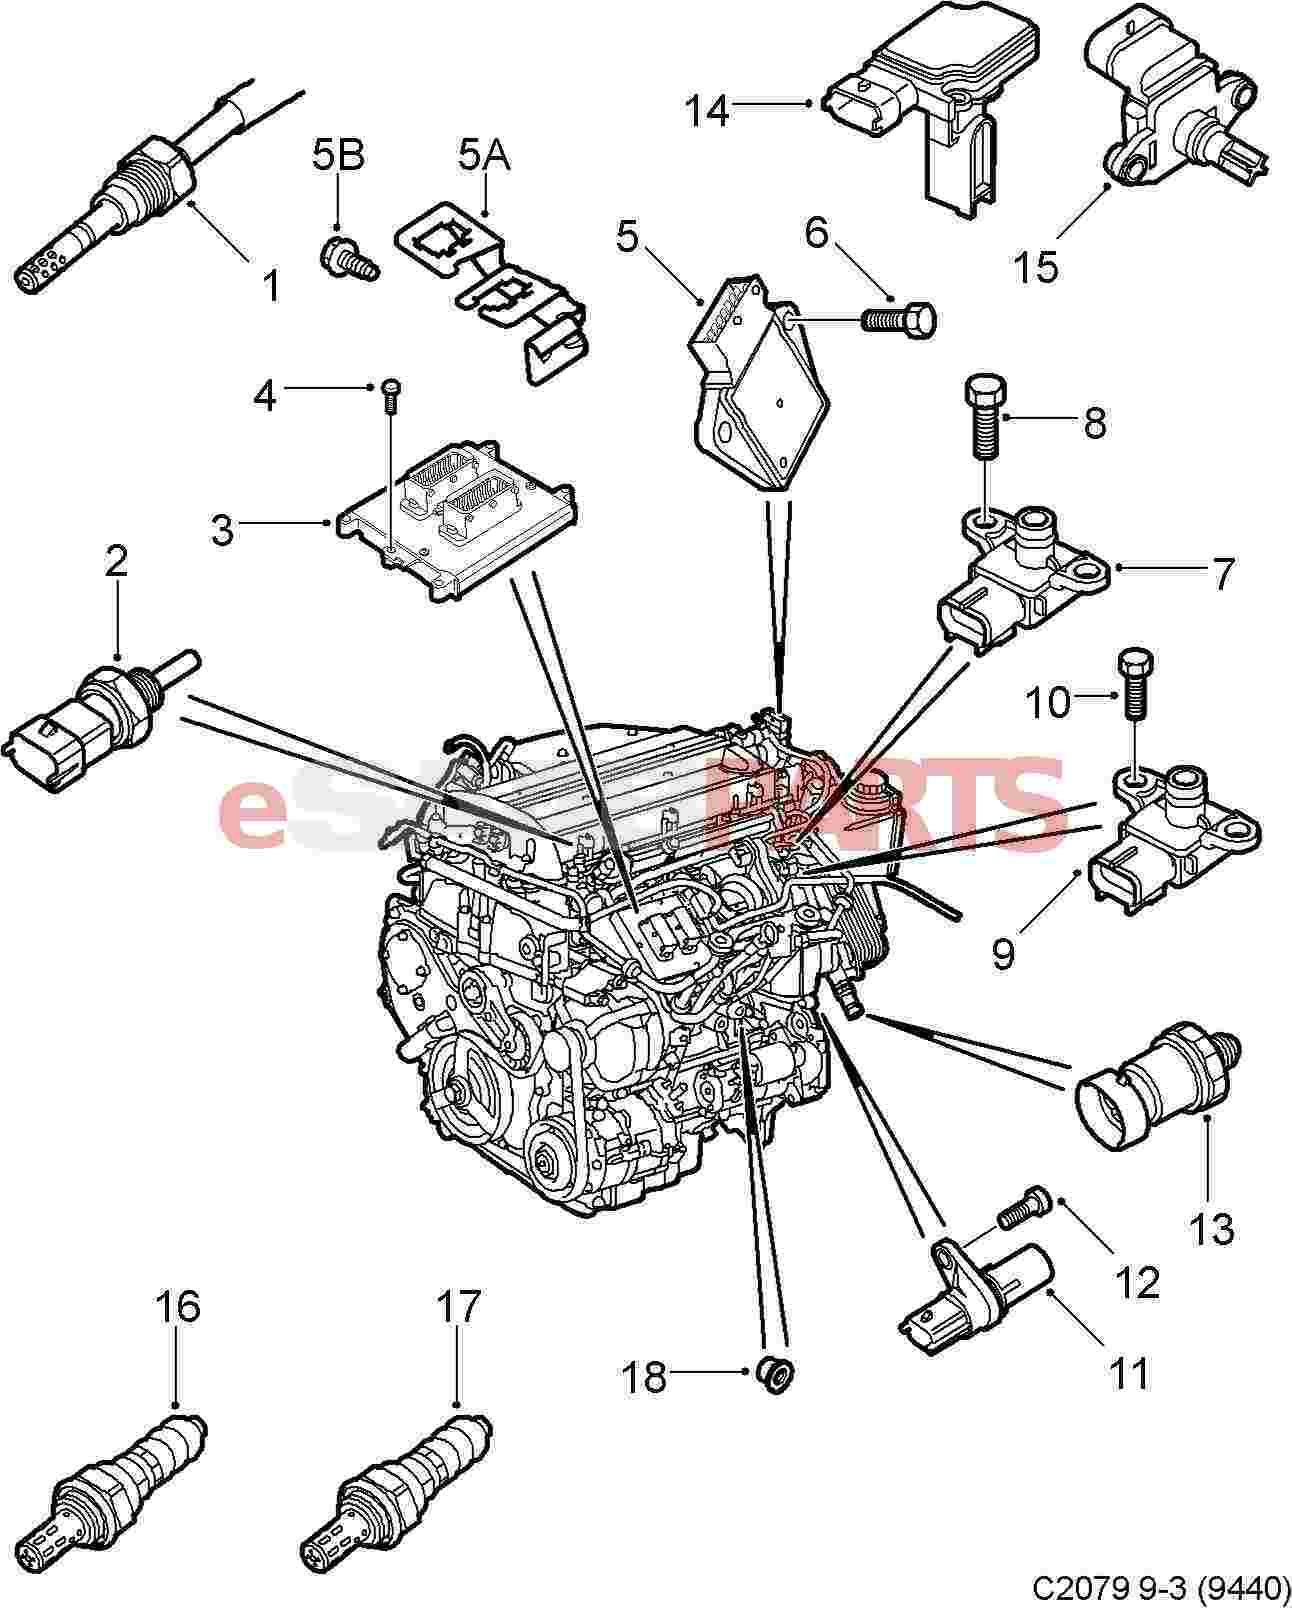 Saab 9 3 Engine Diagram Free Wiring For You 1999 2003 5 Library Rh 14 Muehlwald De Compartment